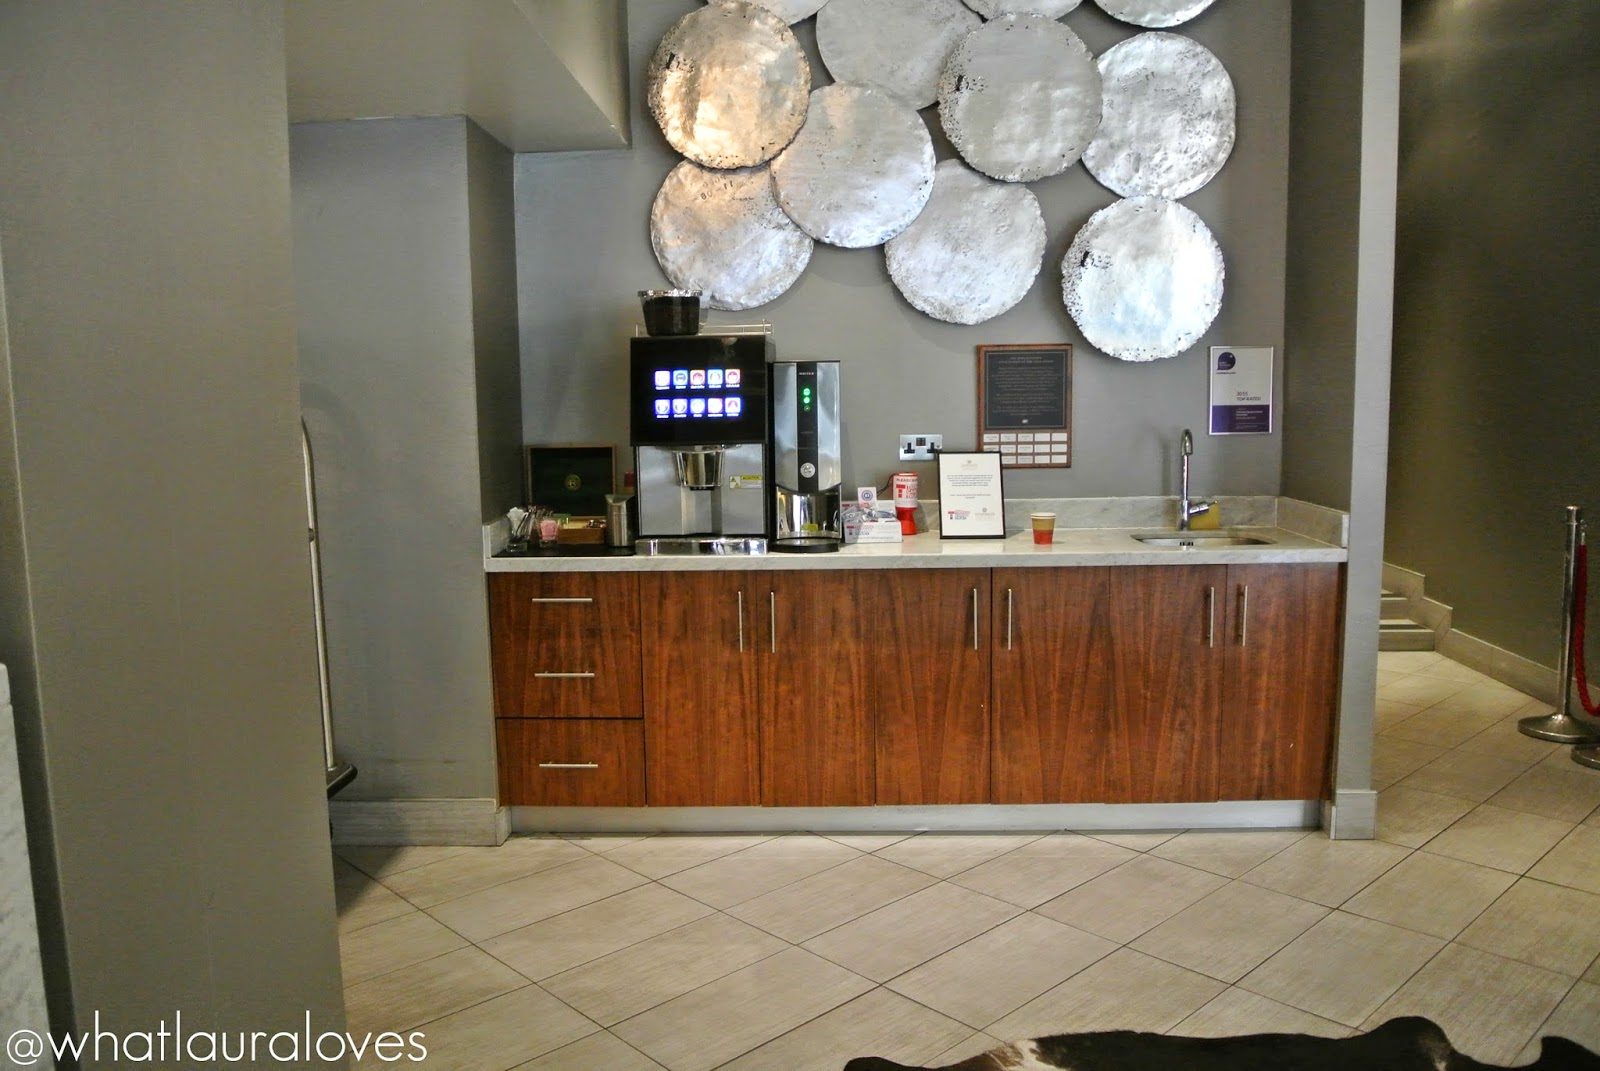 Sandman Signature Hotel in Newcastle Review